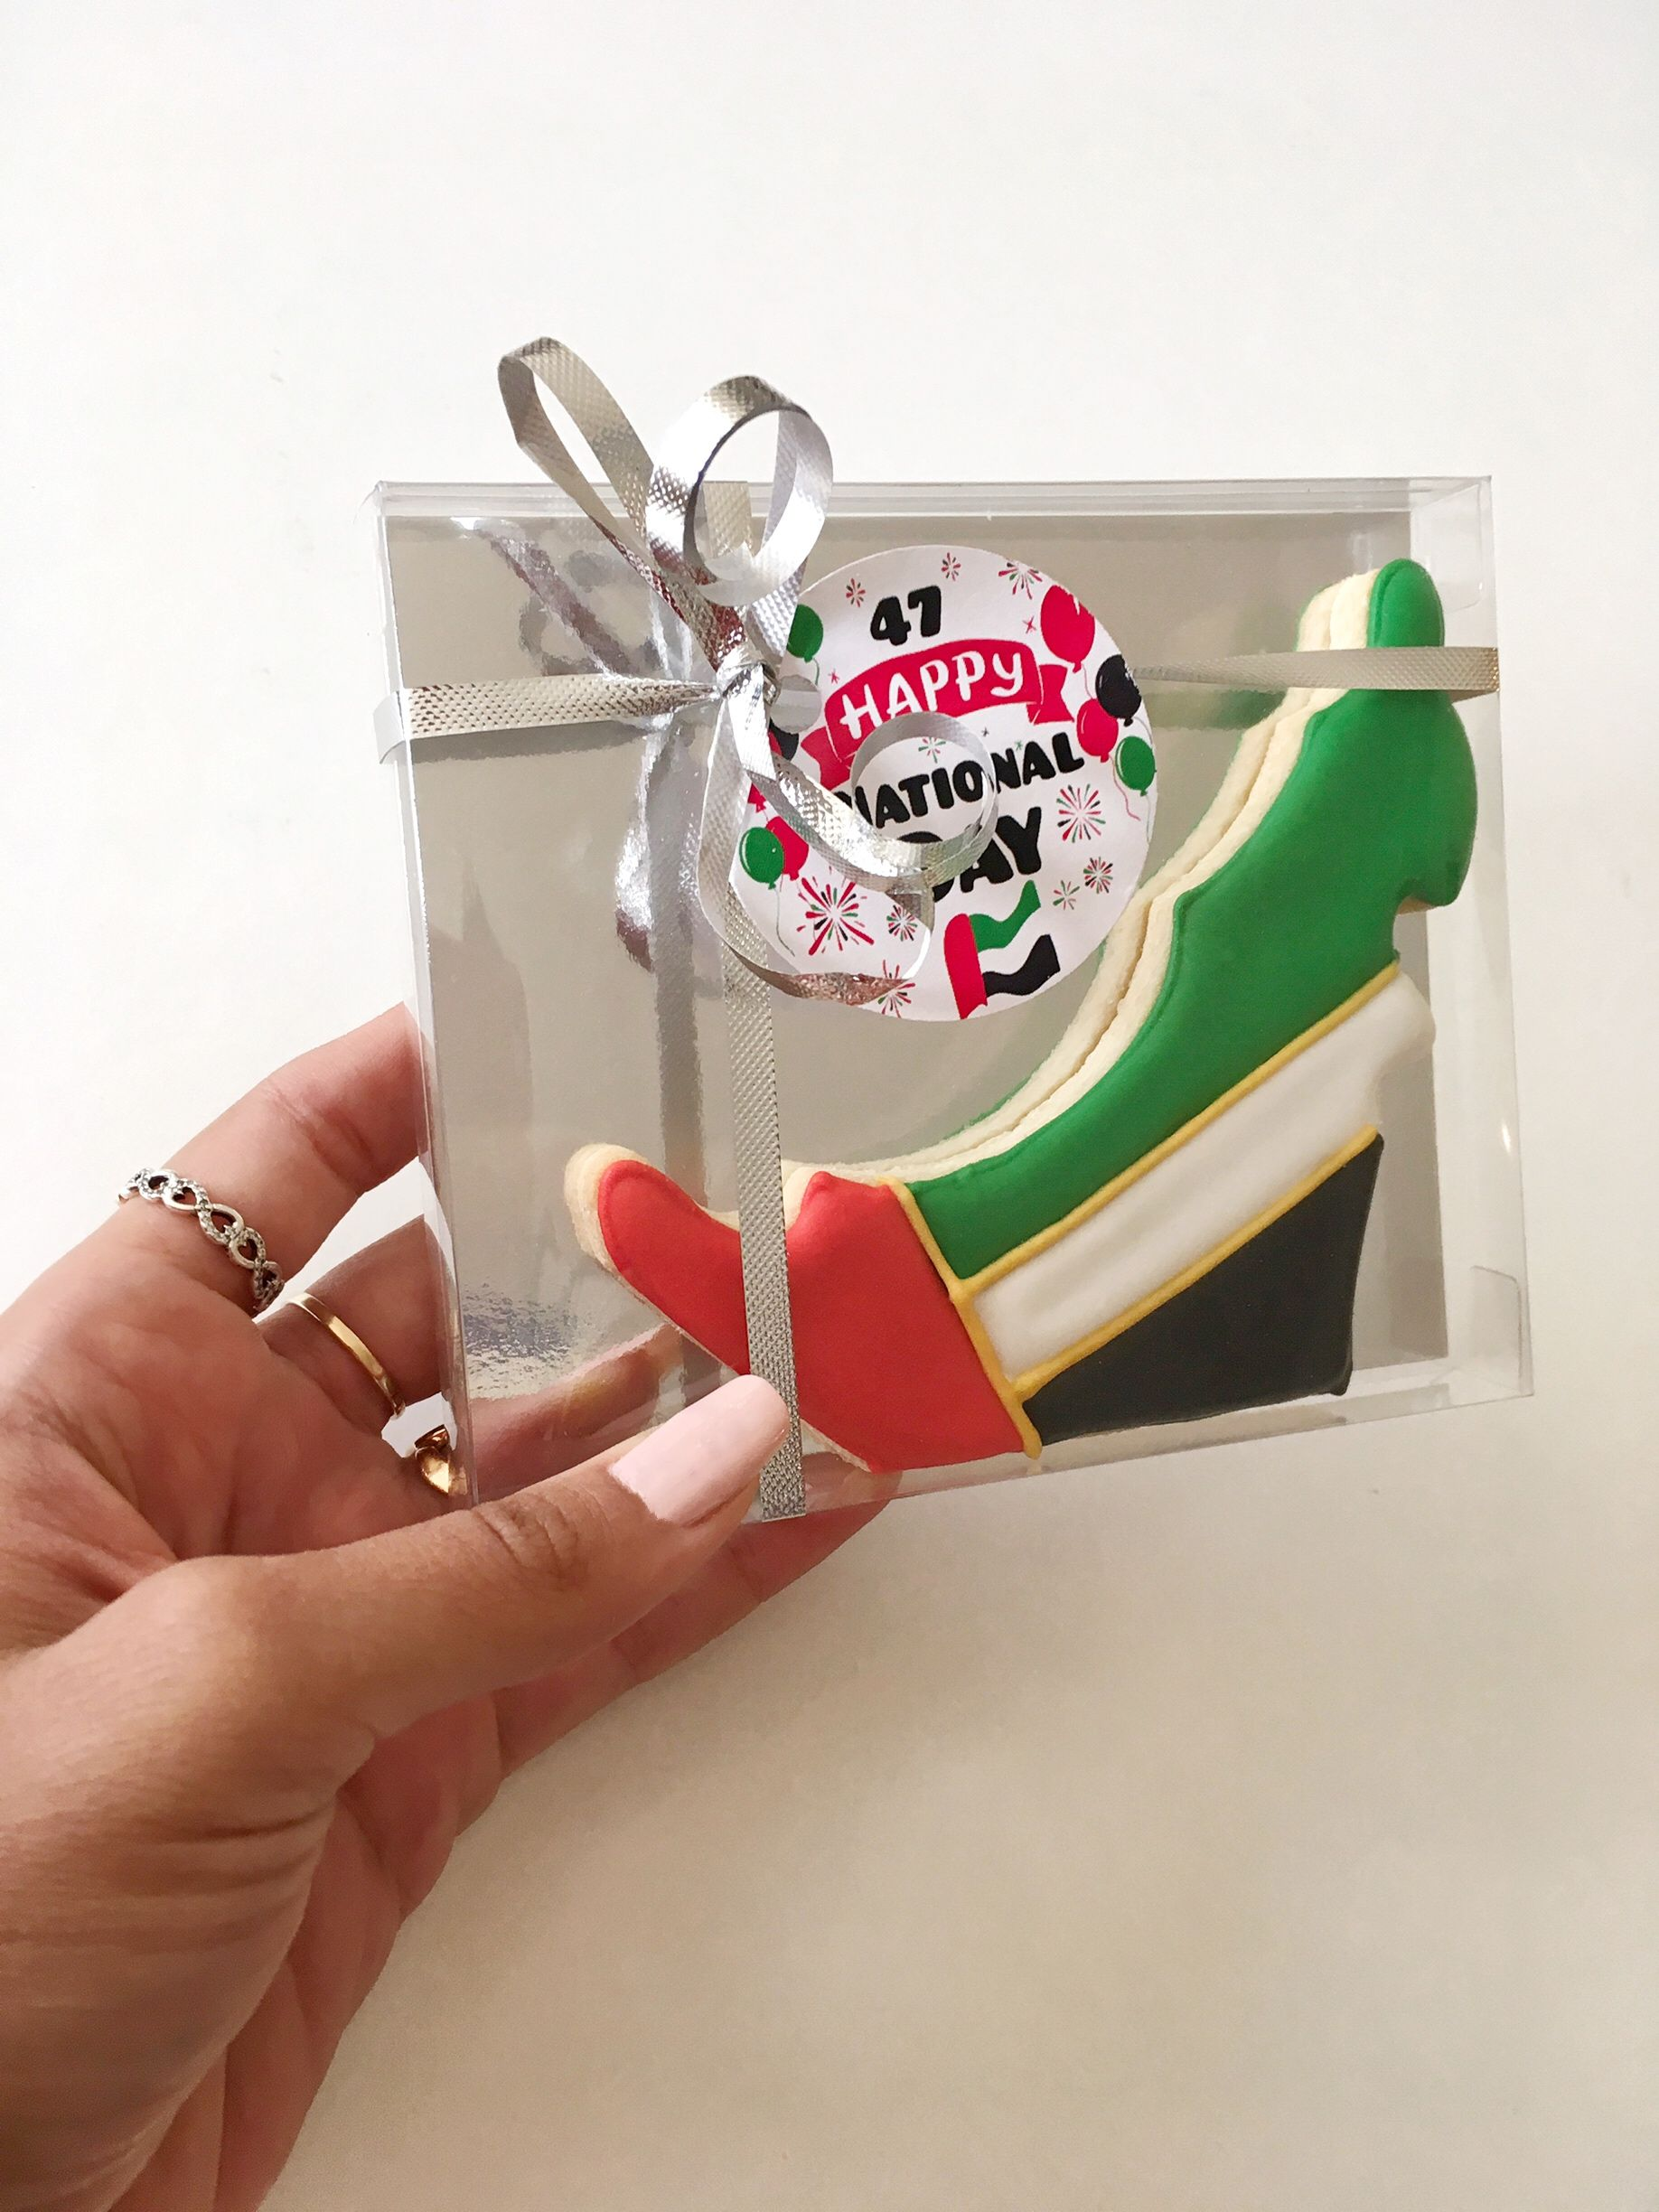 Uae Flag Day And National Day Favors Uae National Day Uae Flag National Day